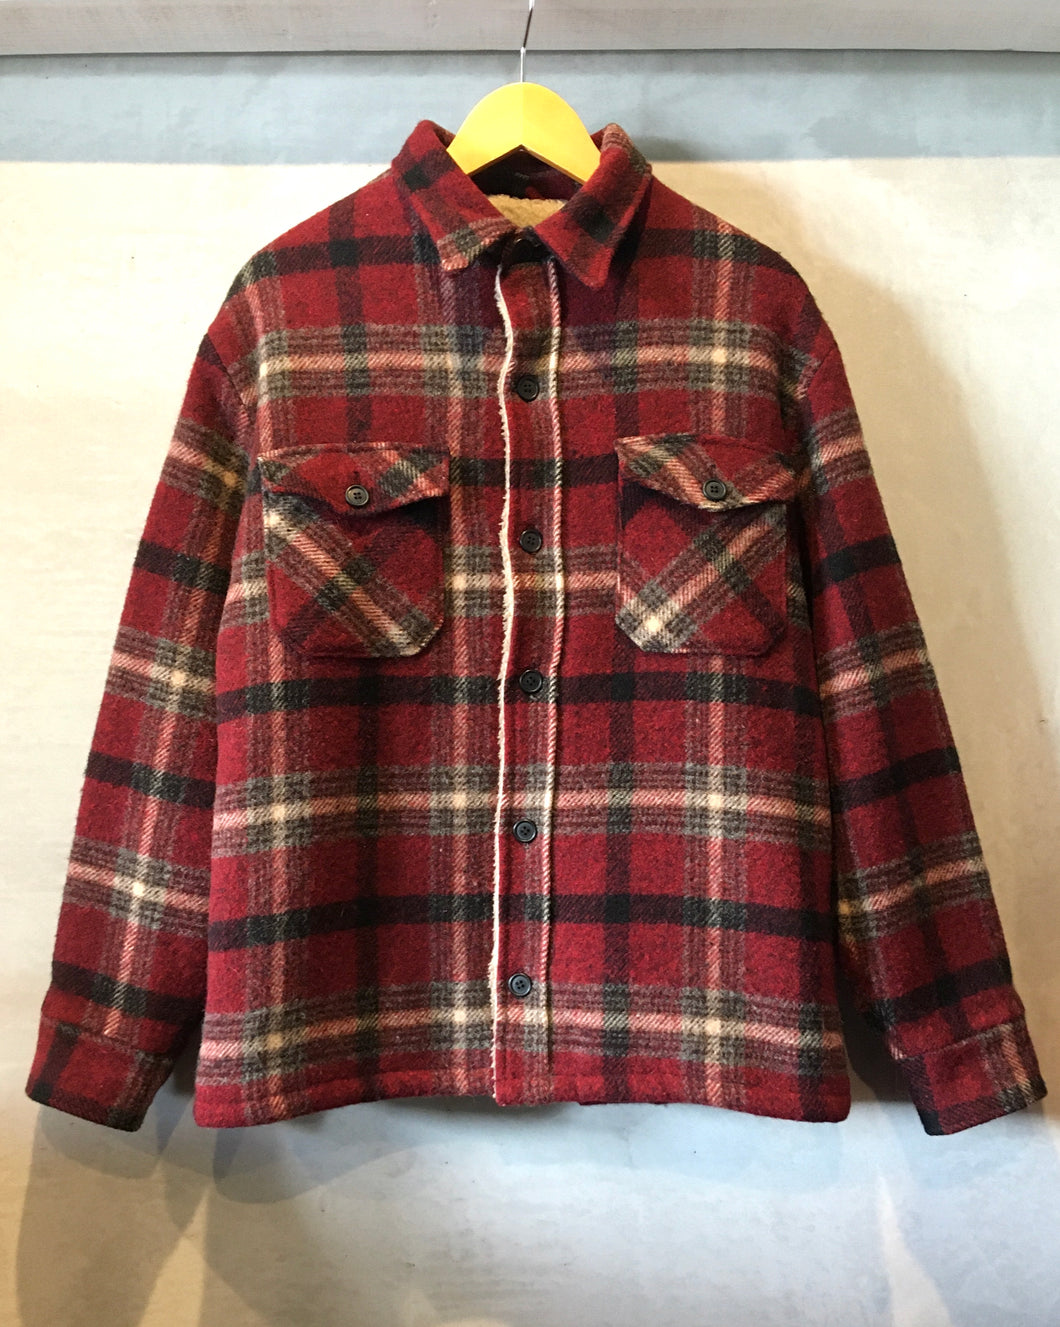 Woolrich-Wool×Boa jacket-(size M)Made in U.S.A.